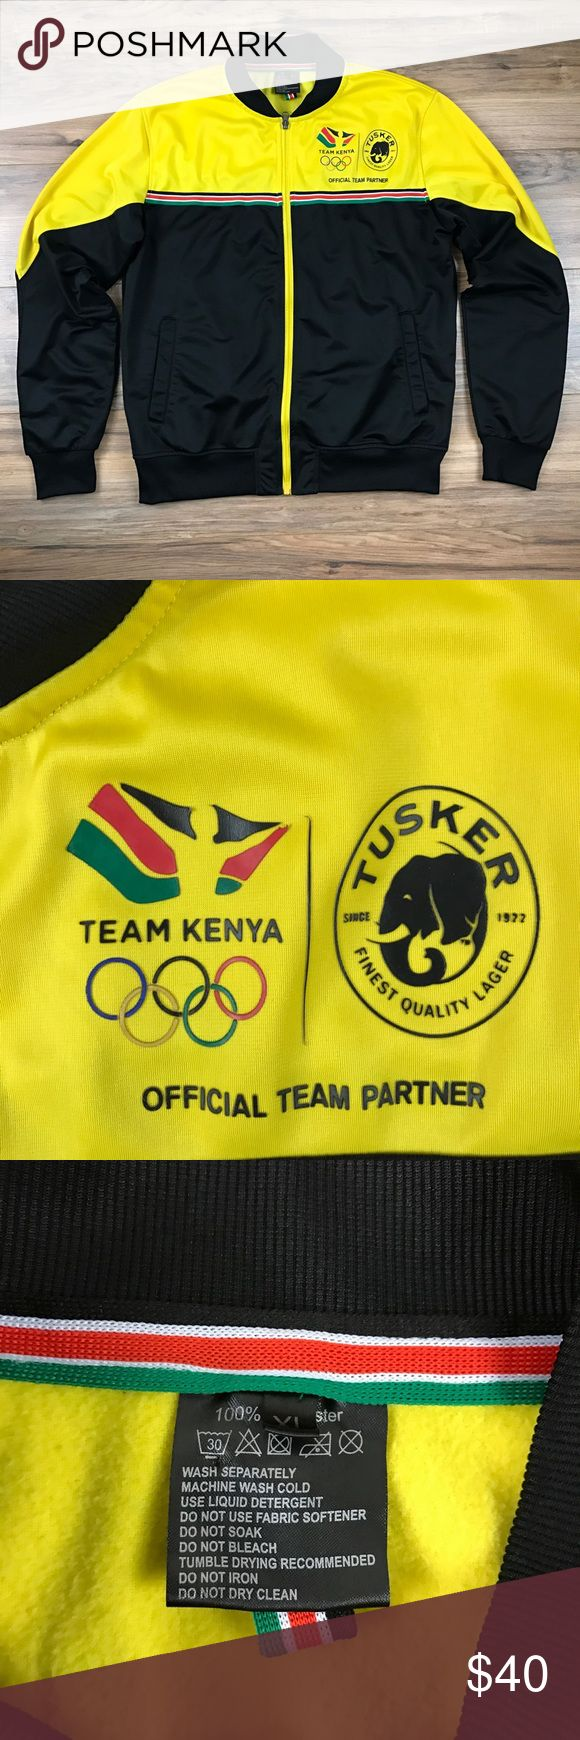 Team Kenya Olympic Track Jacket NWOT Official Team Partner. Team Kenya Olympic Track Jacket. 100% polyester. Excellent condition. Jackets & Coats Performance Jackets